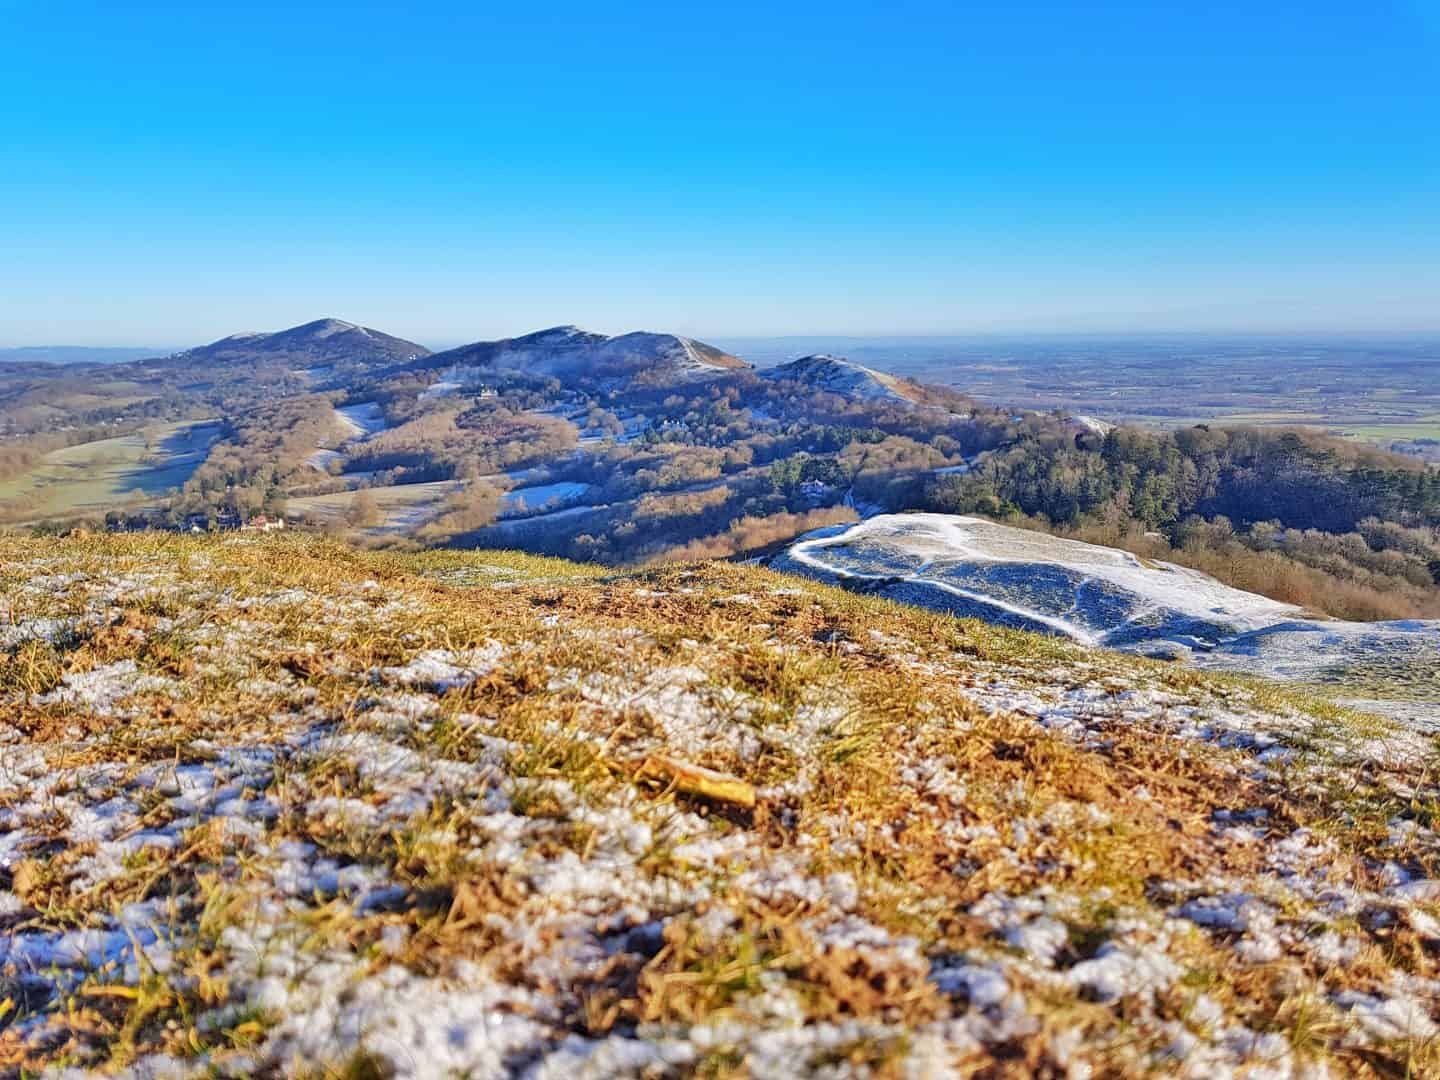 View along the length of the snowy Malvern Hills from the Herefordshire Beacon with blues sky above